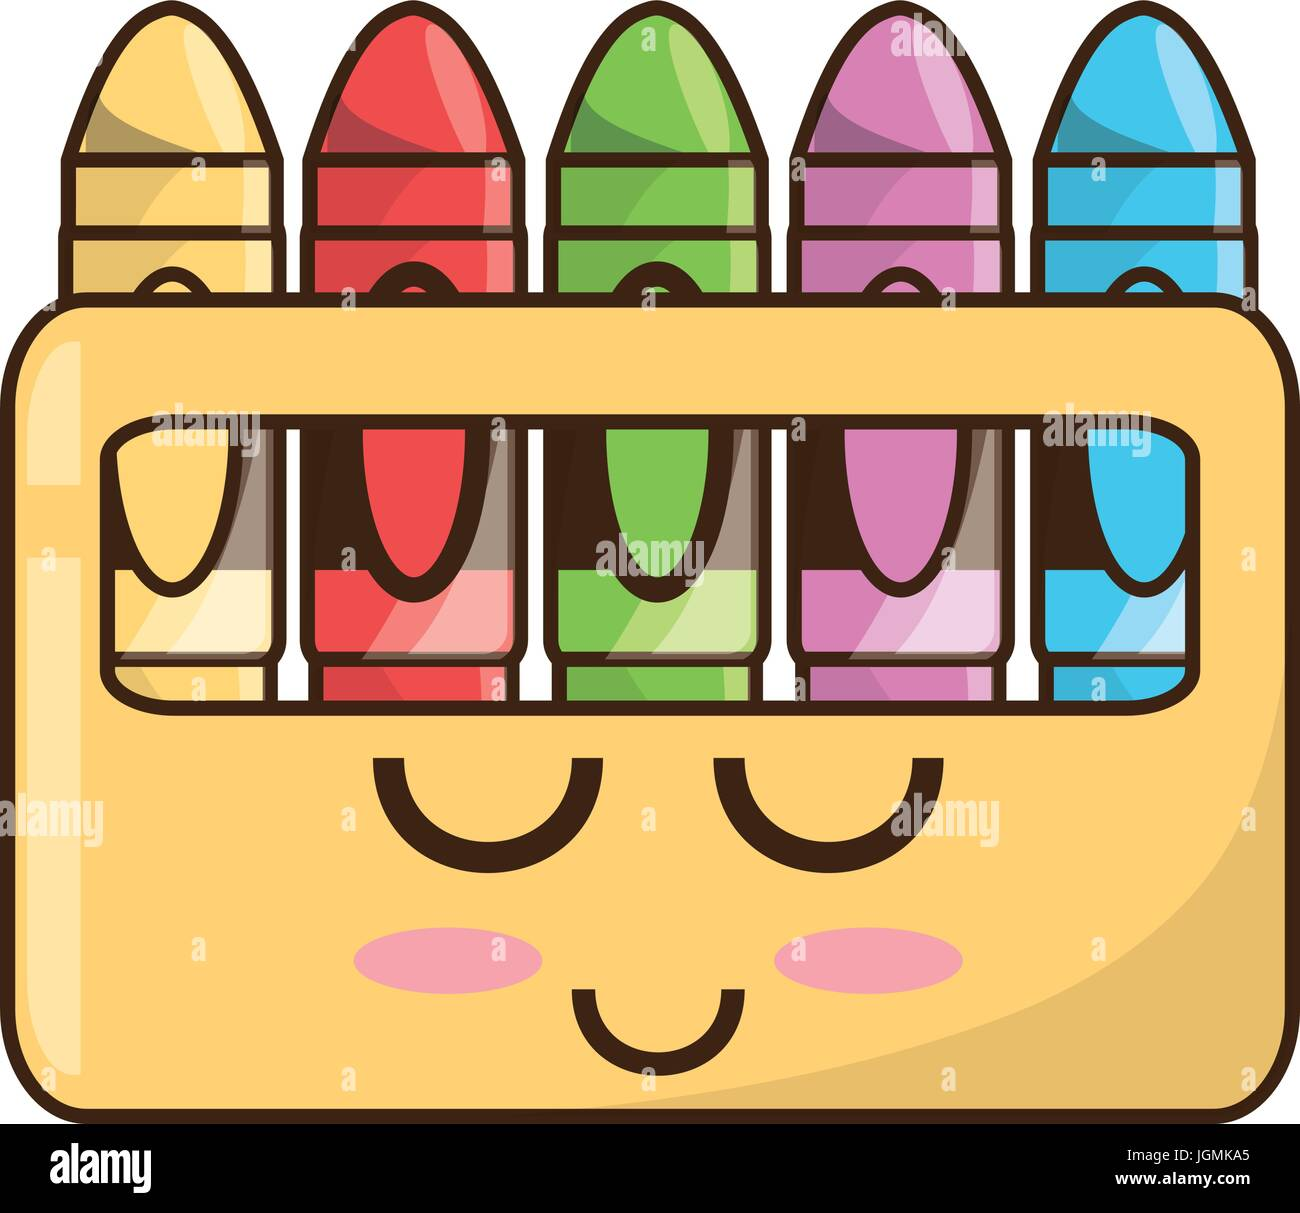 Cute Crayons Cartoon Stock Vector Art Illustration Vector Image - Cartoon-pictures-of-crayons